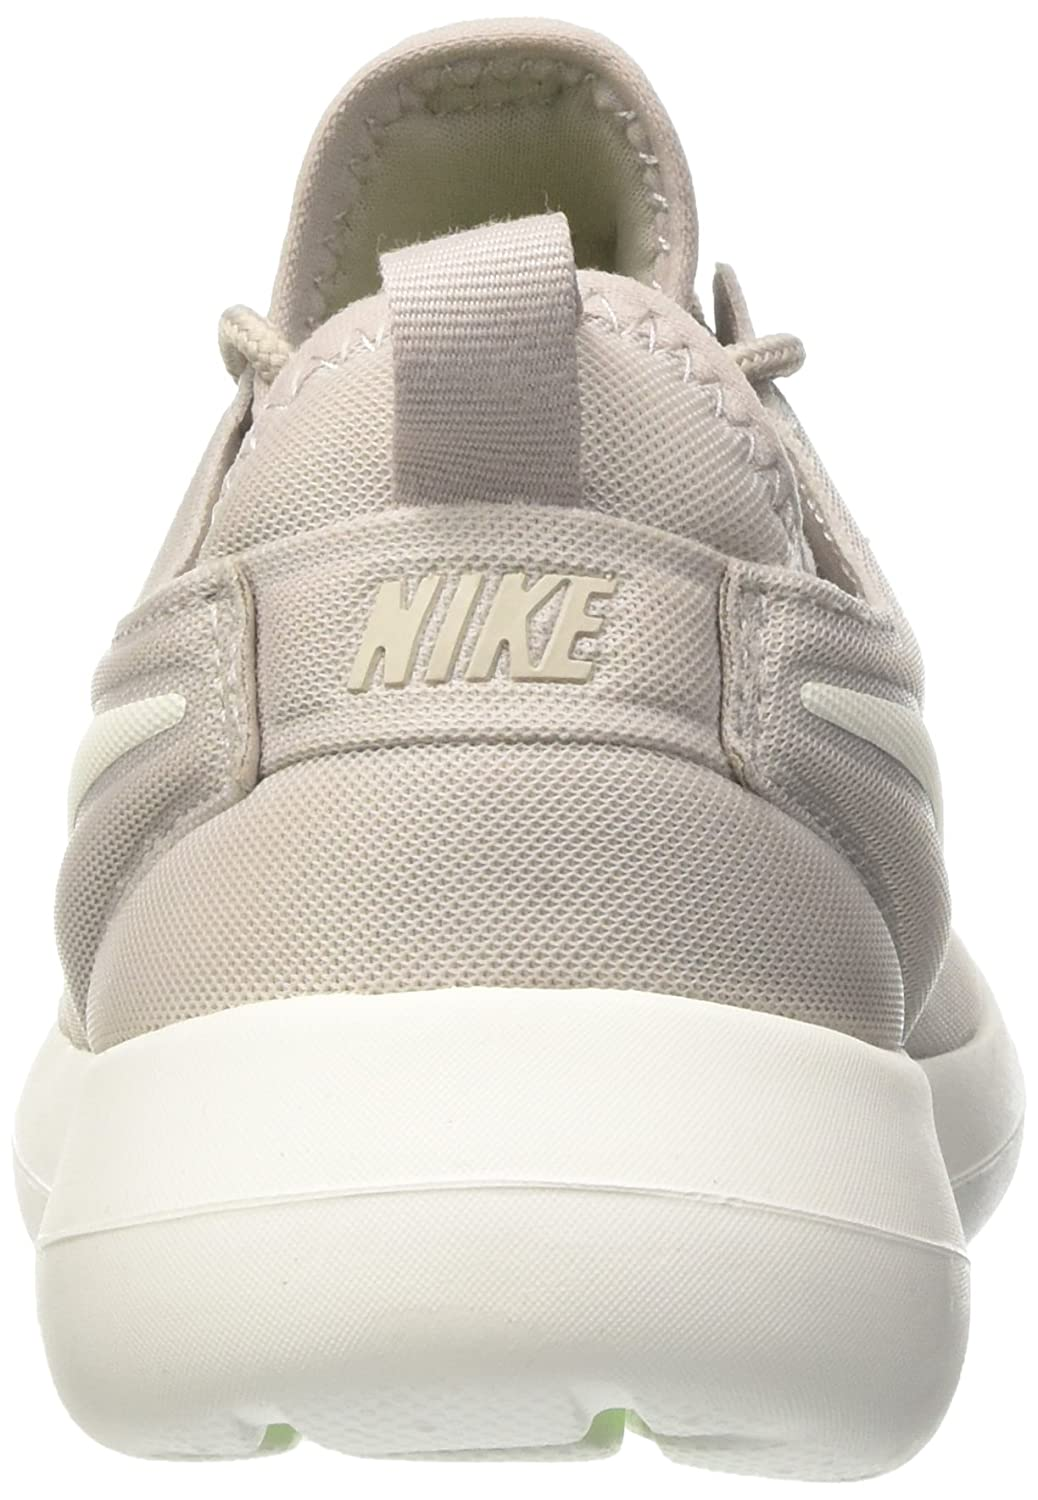 low priced 060a3 ae24b Nike Women s s WMNS Roshe Two Sneakers Grey  Amazon.co.uk  Shoes   Bags